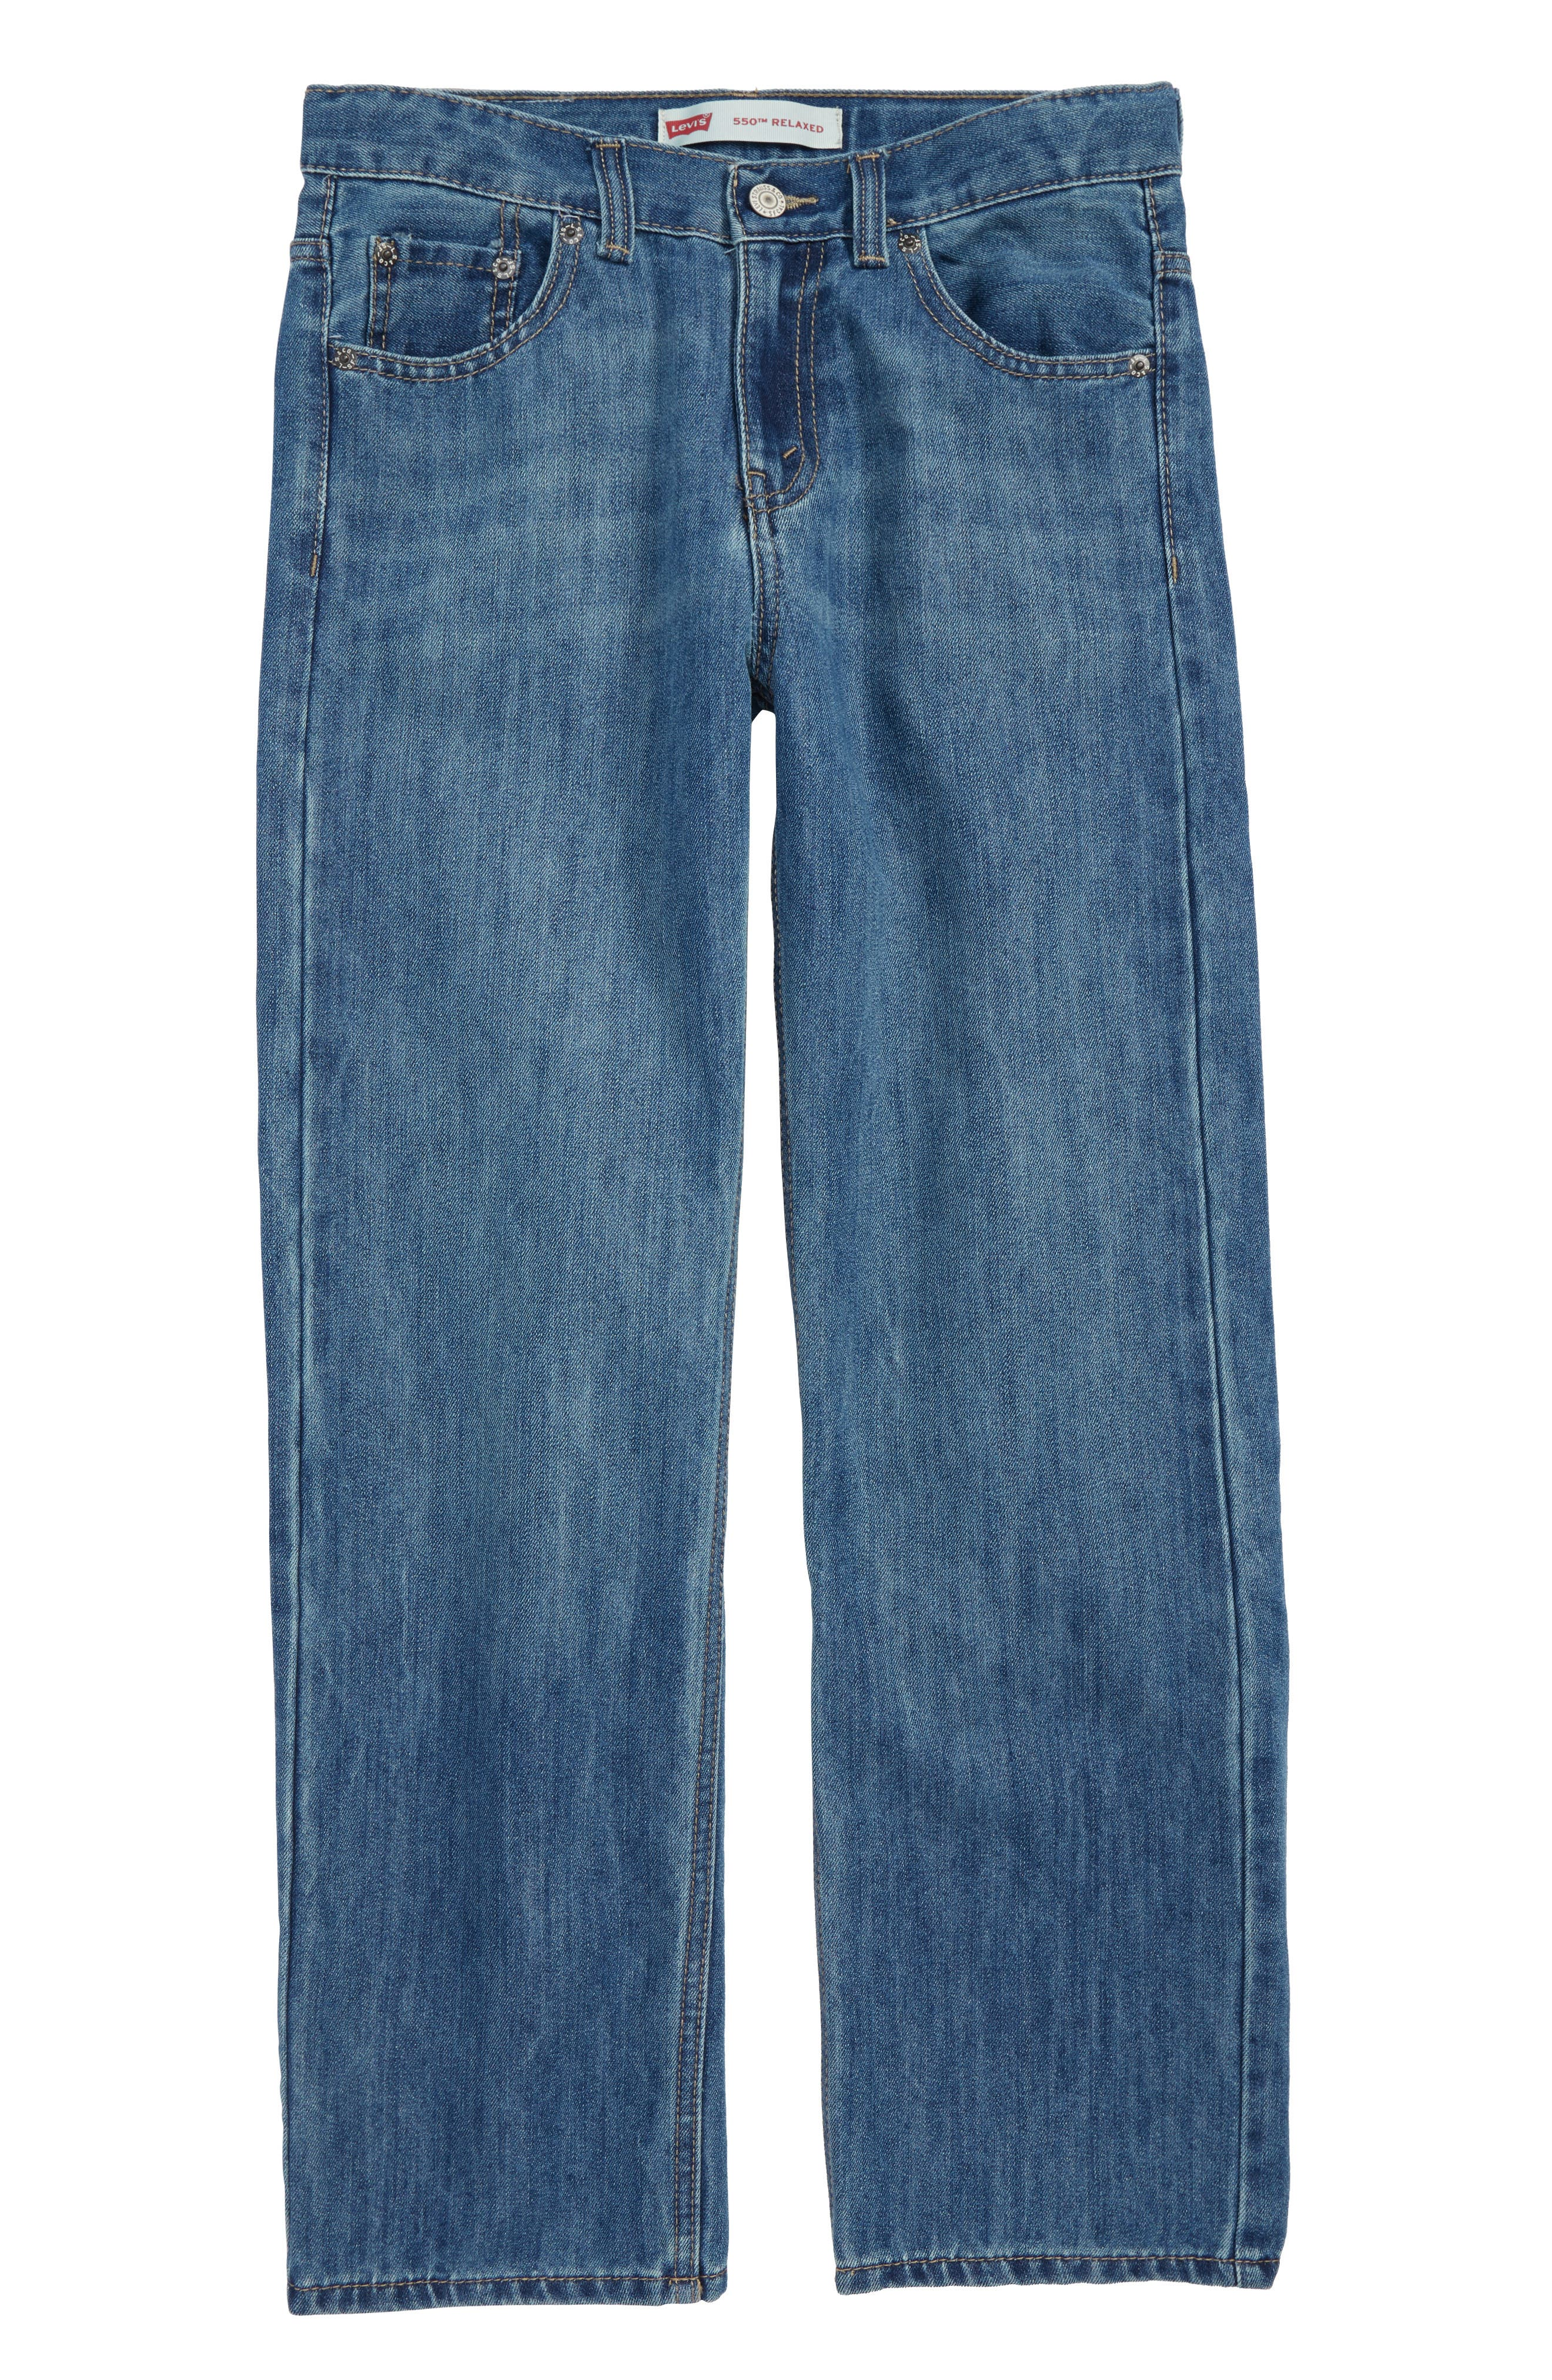 550<sup>™</sup> Relaxed Fit Jeans,                         Main,                         color, 426